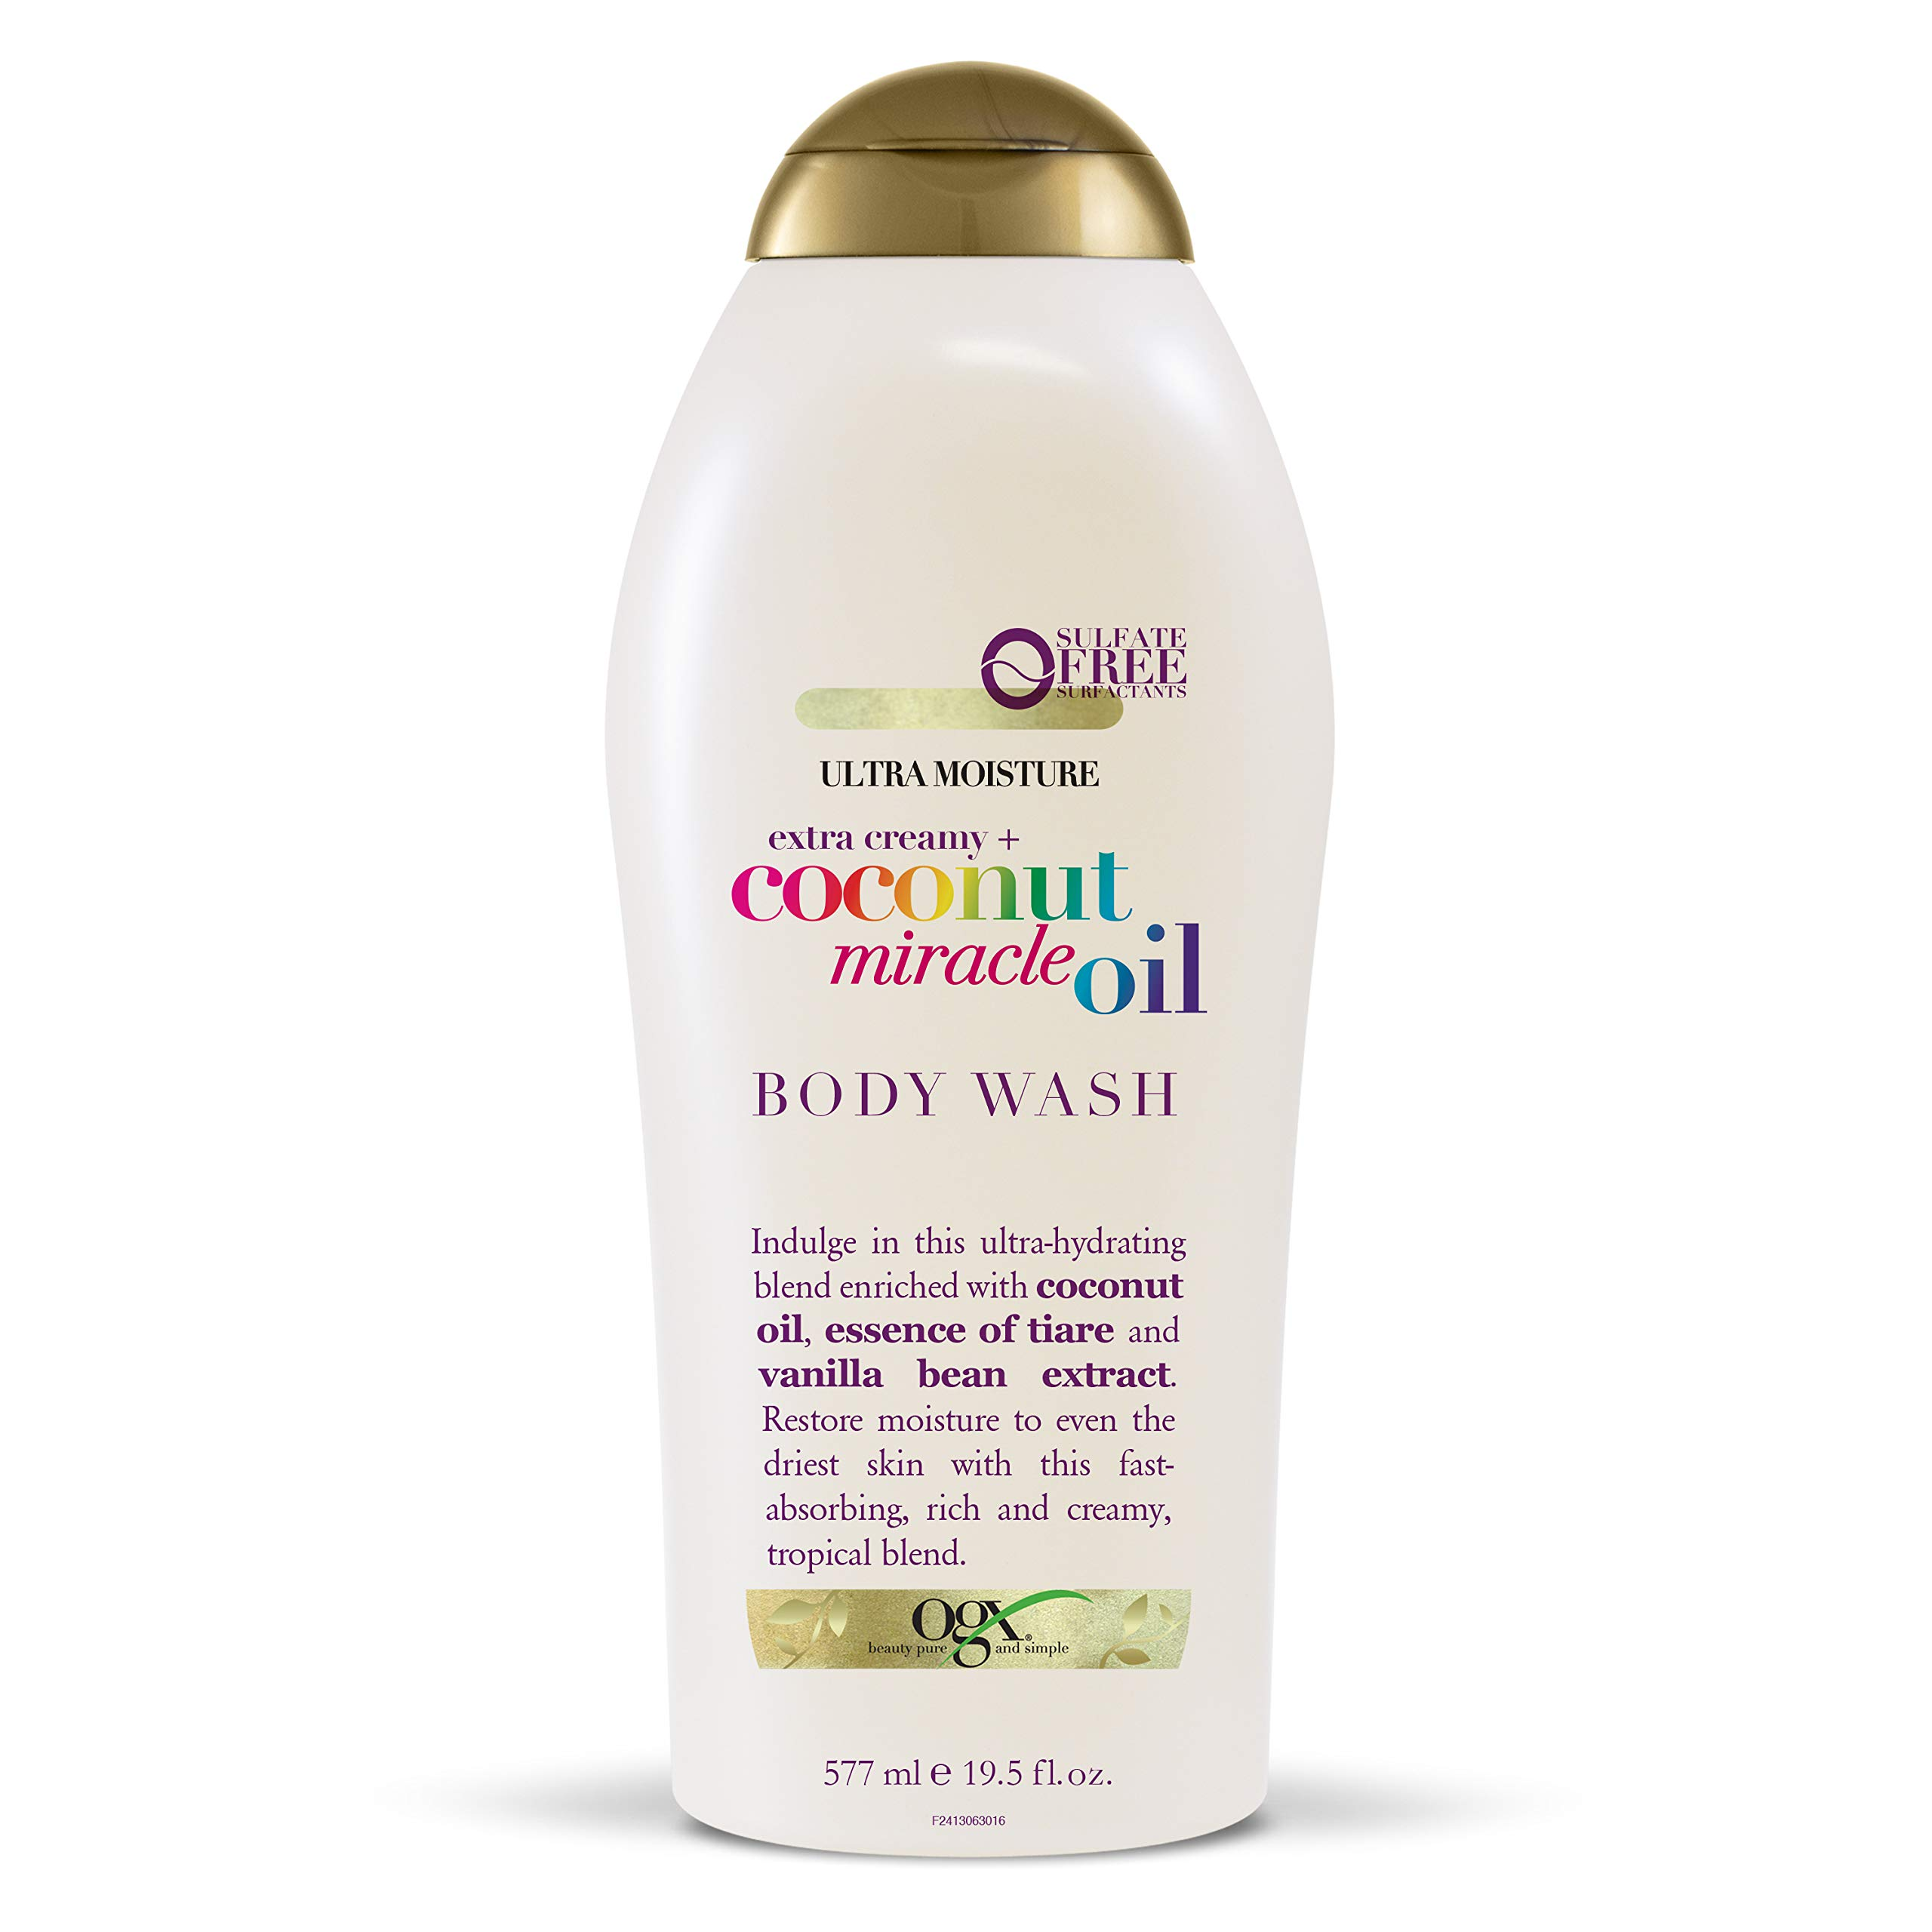 OGX Extra Creamy + Coconut Miracle Oil Ultra Moisture Body Wash, 19.5 Fl Oz